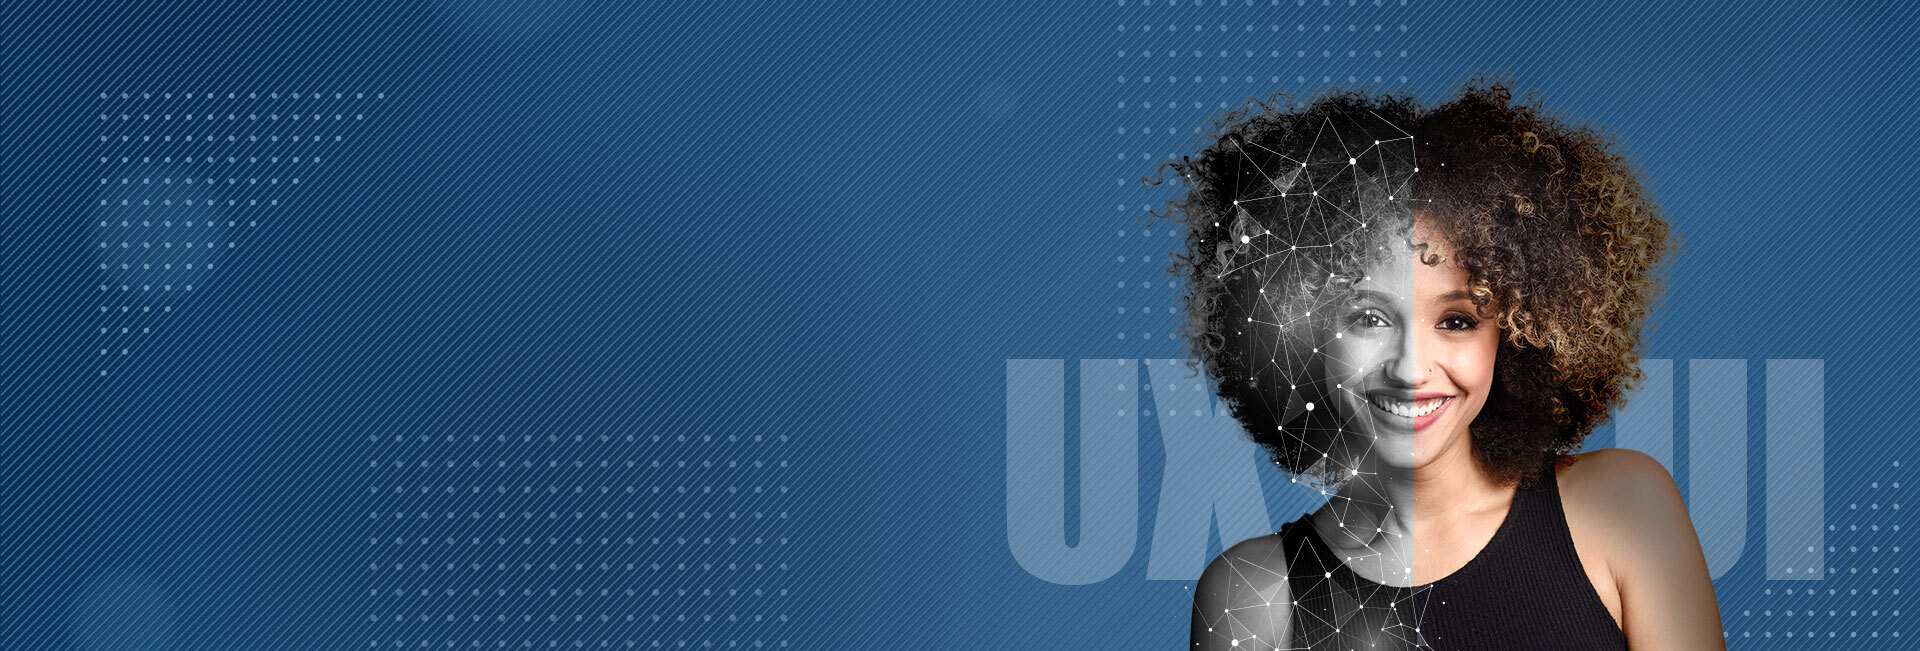 UI and UX Design Services